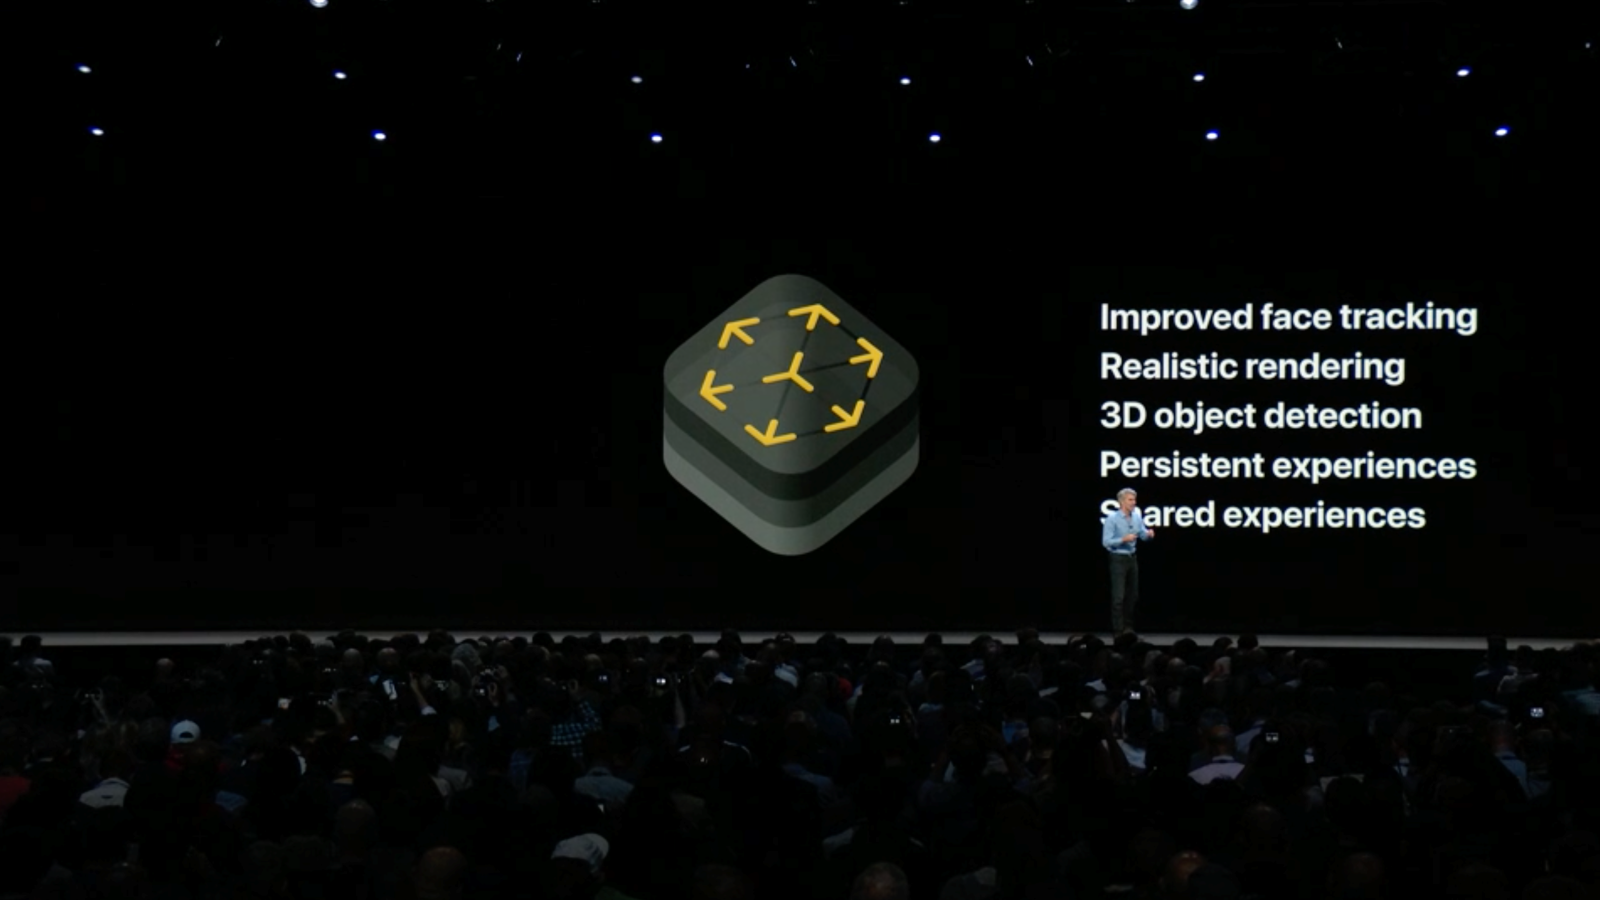 Apple introduces ARKit 2.0 with shared experiences, face tracking improvements, more